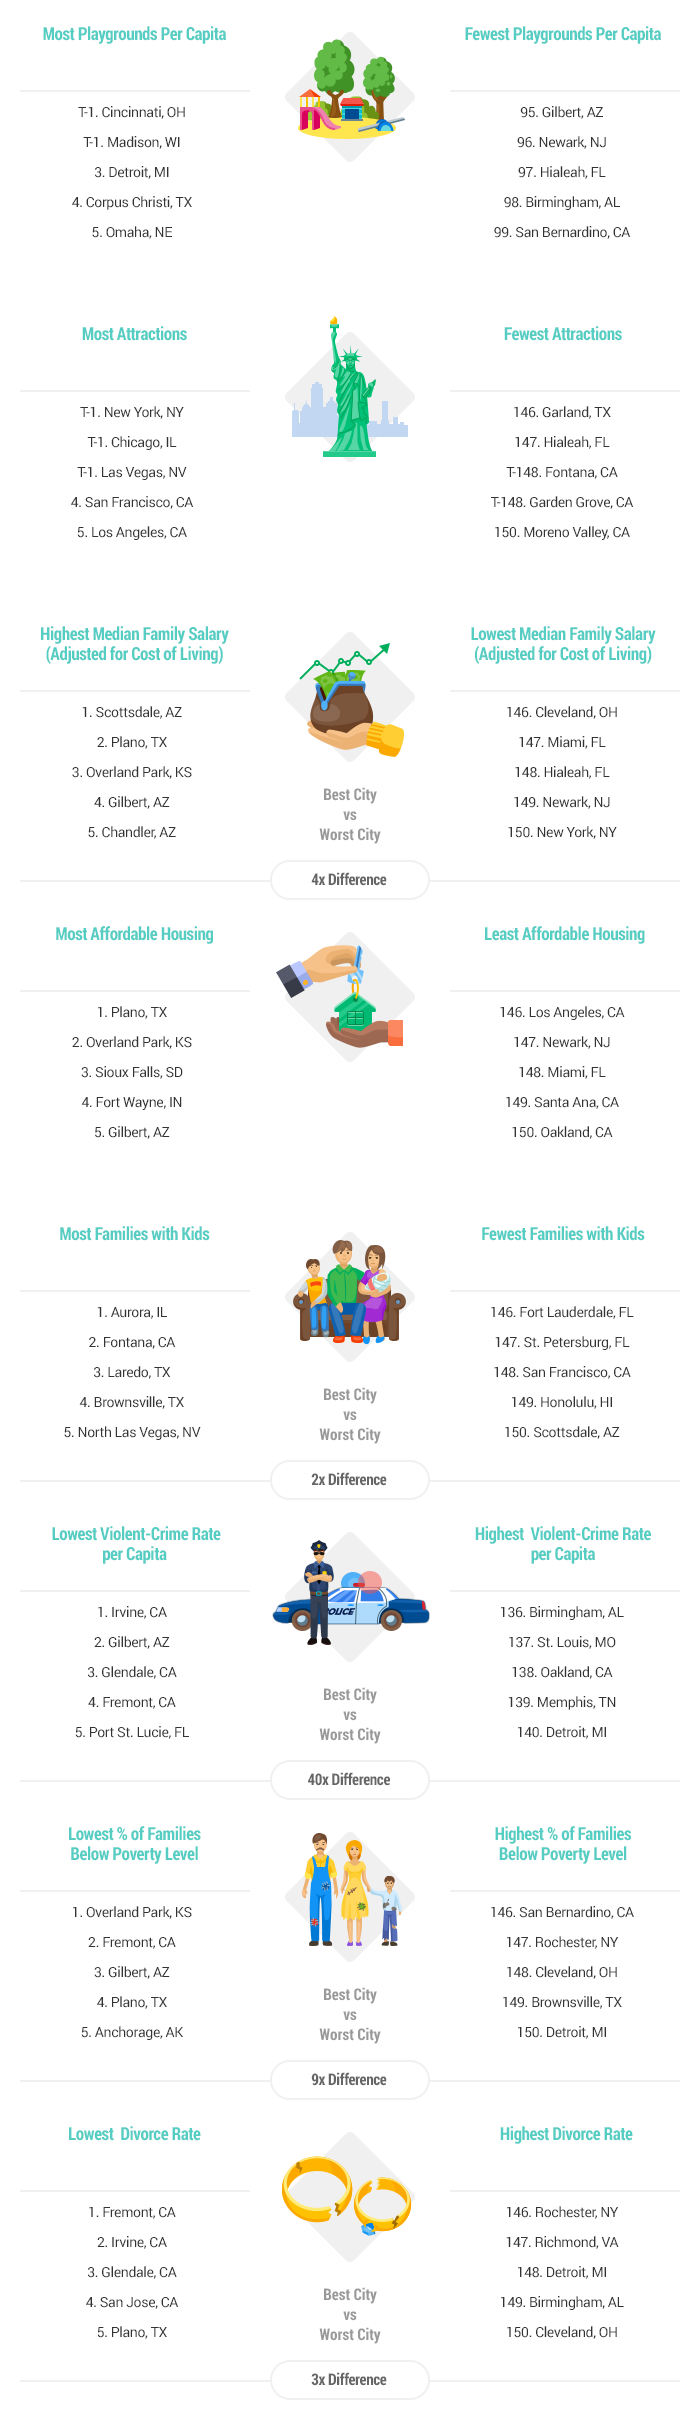 Artwork-Best-&-Worst-Cities-for-Families-report-2016-v3